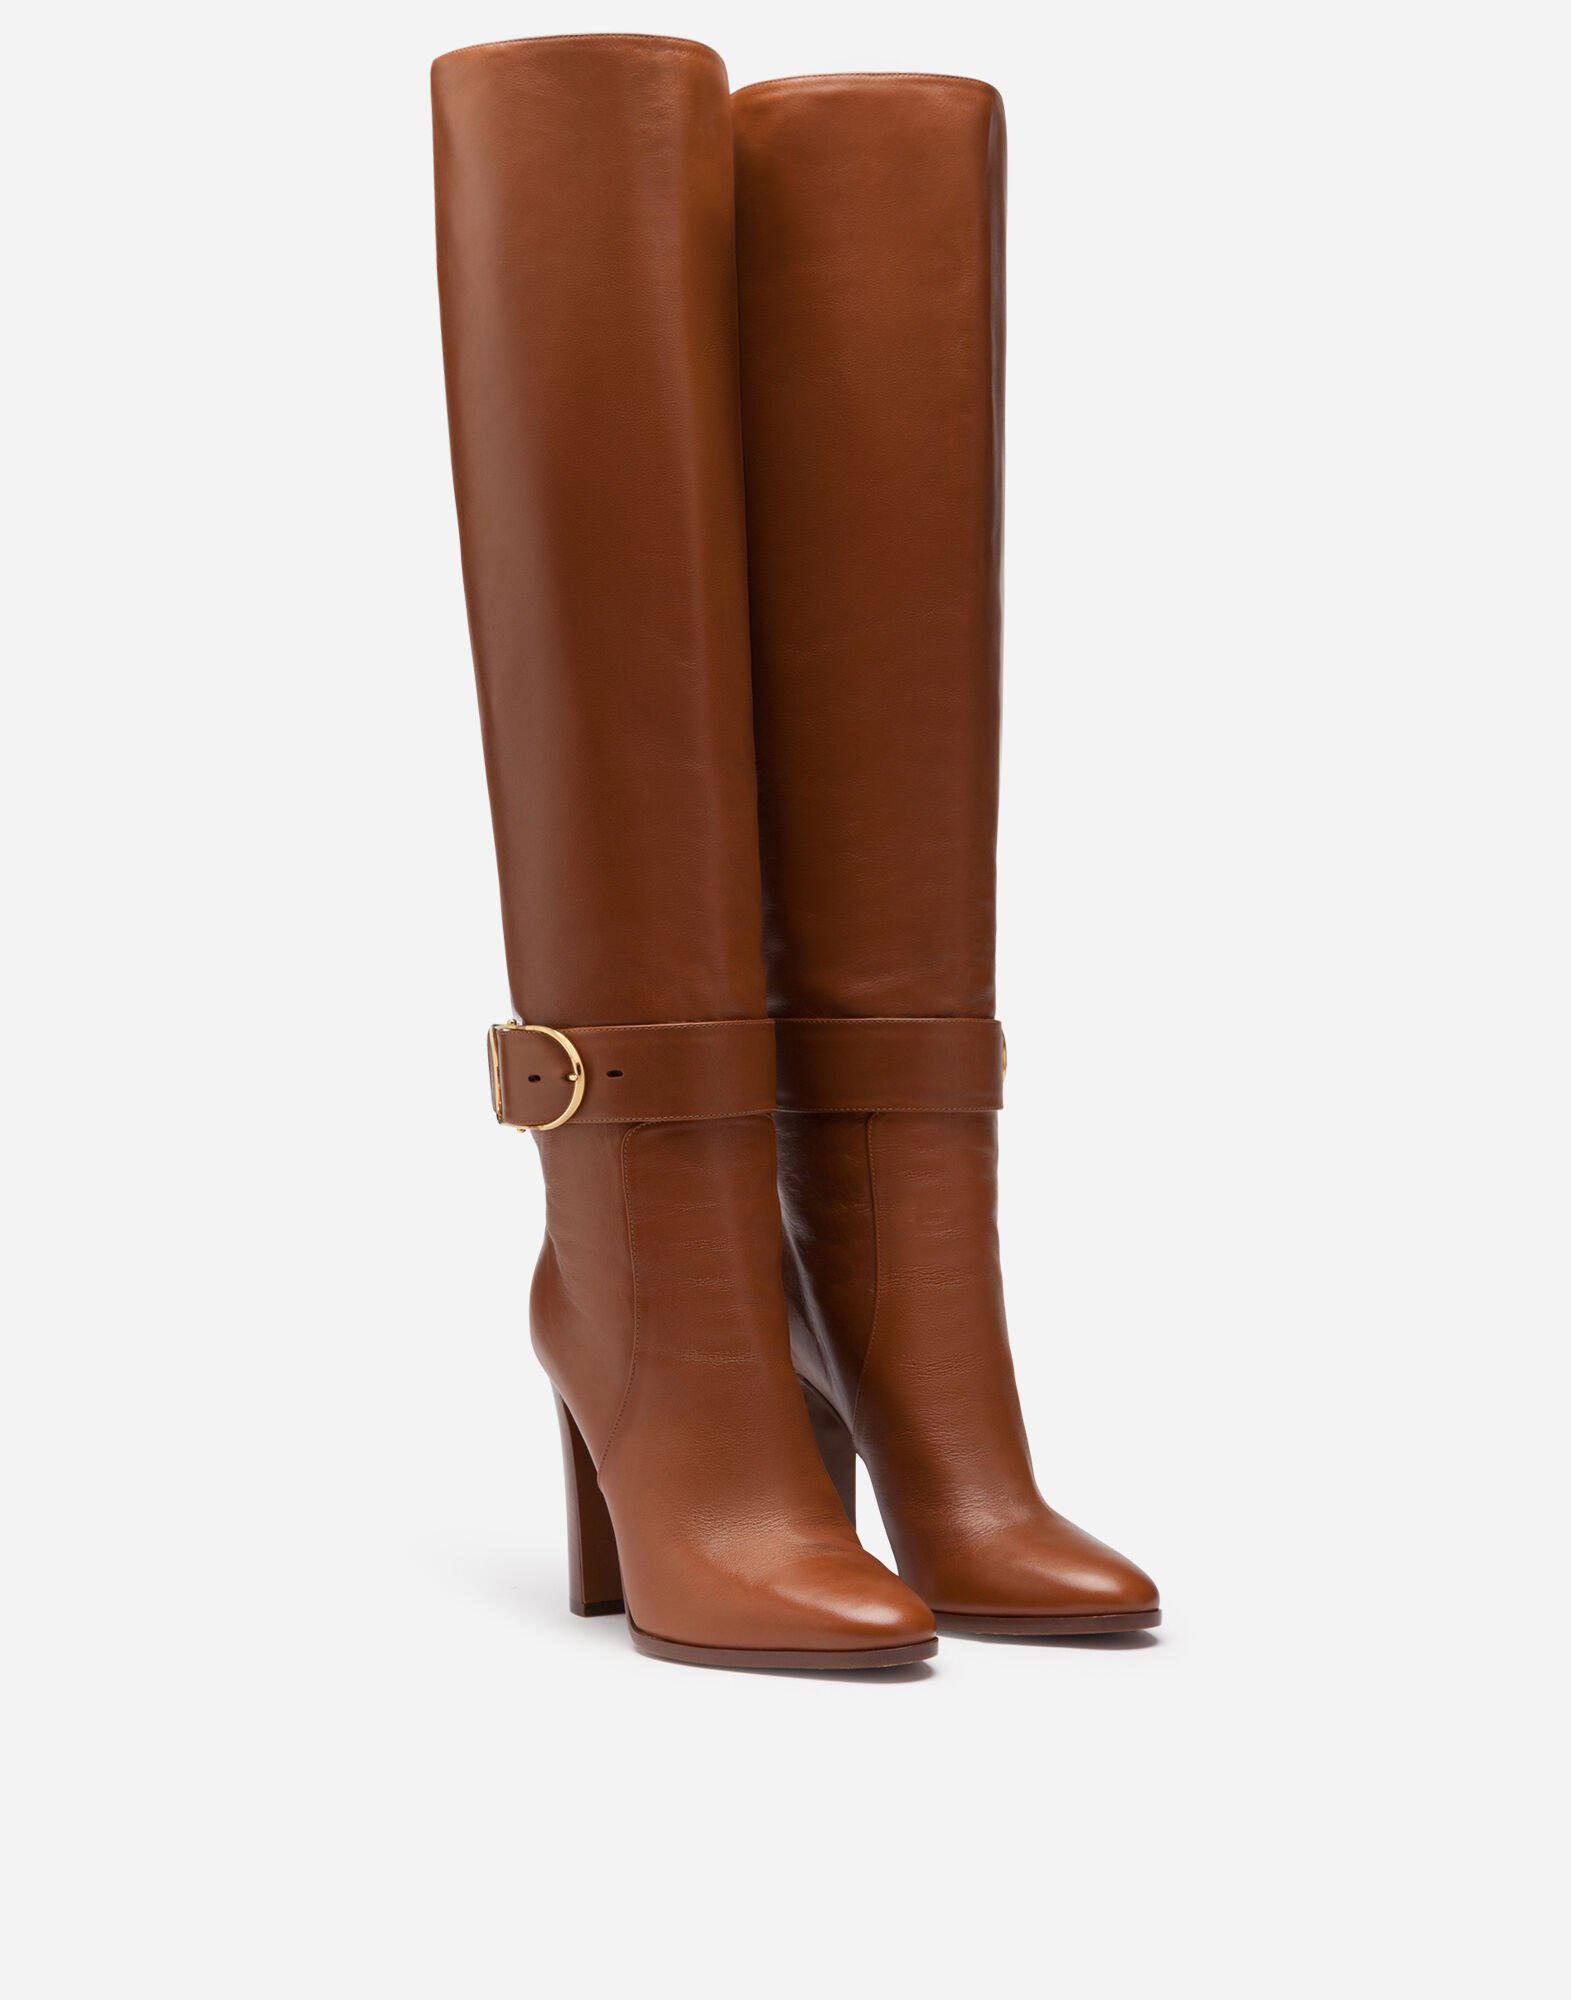 Boots in foulard calfskin with decorative buckle 1